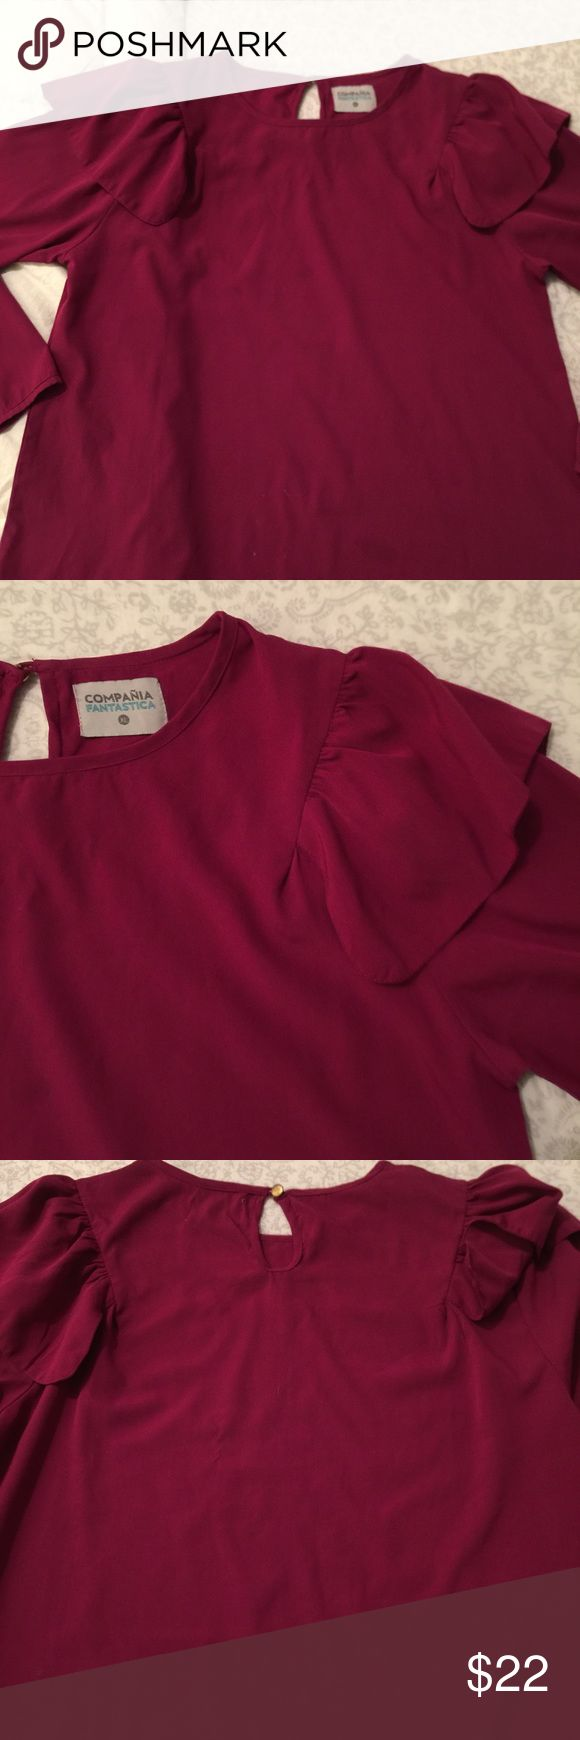 Compania Fantastica fancy top from lord n Taylor Very beautiful only wore it one time to an event. Magenta colored dress top. The most adorable and unique ruffled sleeve. It is an XL but fit very comfortably at a size med/large. Bought at lord and Taylor Compania Fantastica Tops Blouses